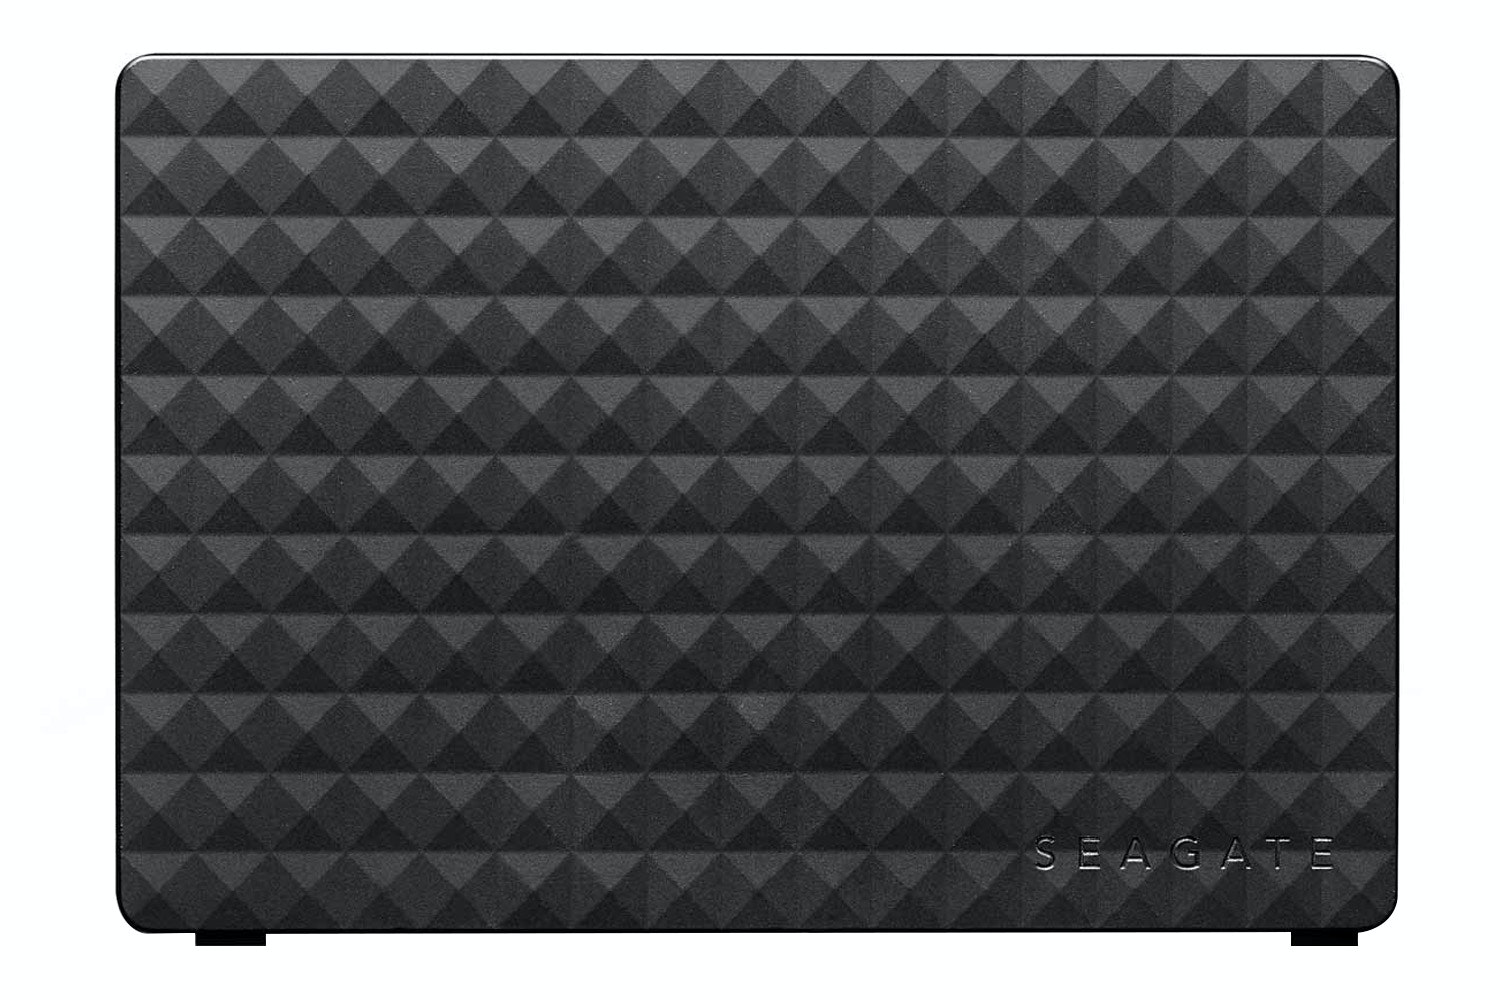 Seagate Expansion Desktop Hard Drive | 2TB